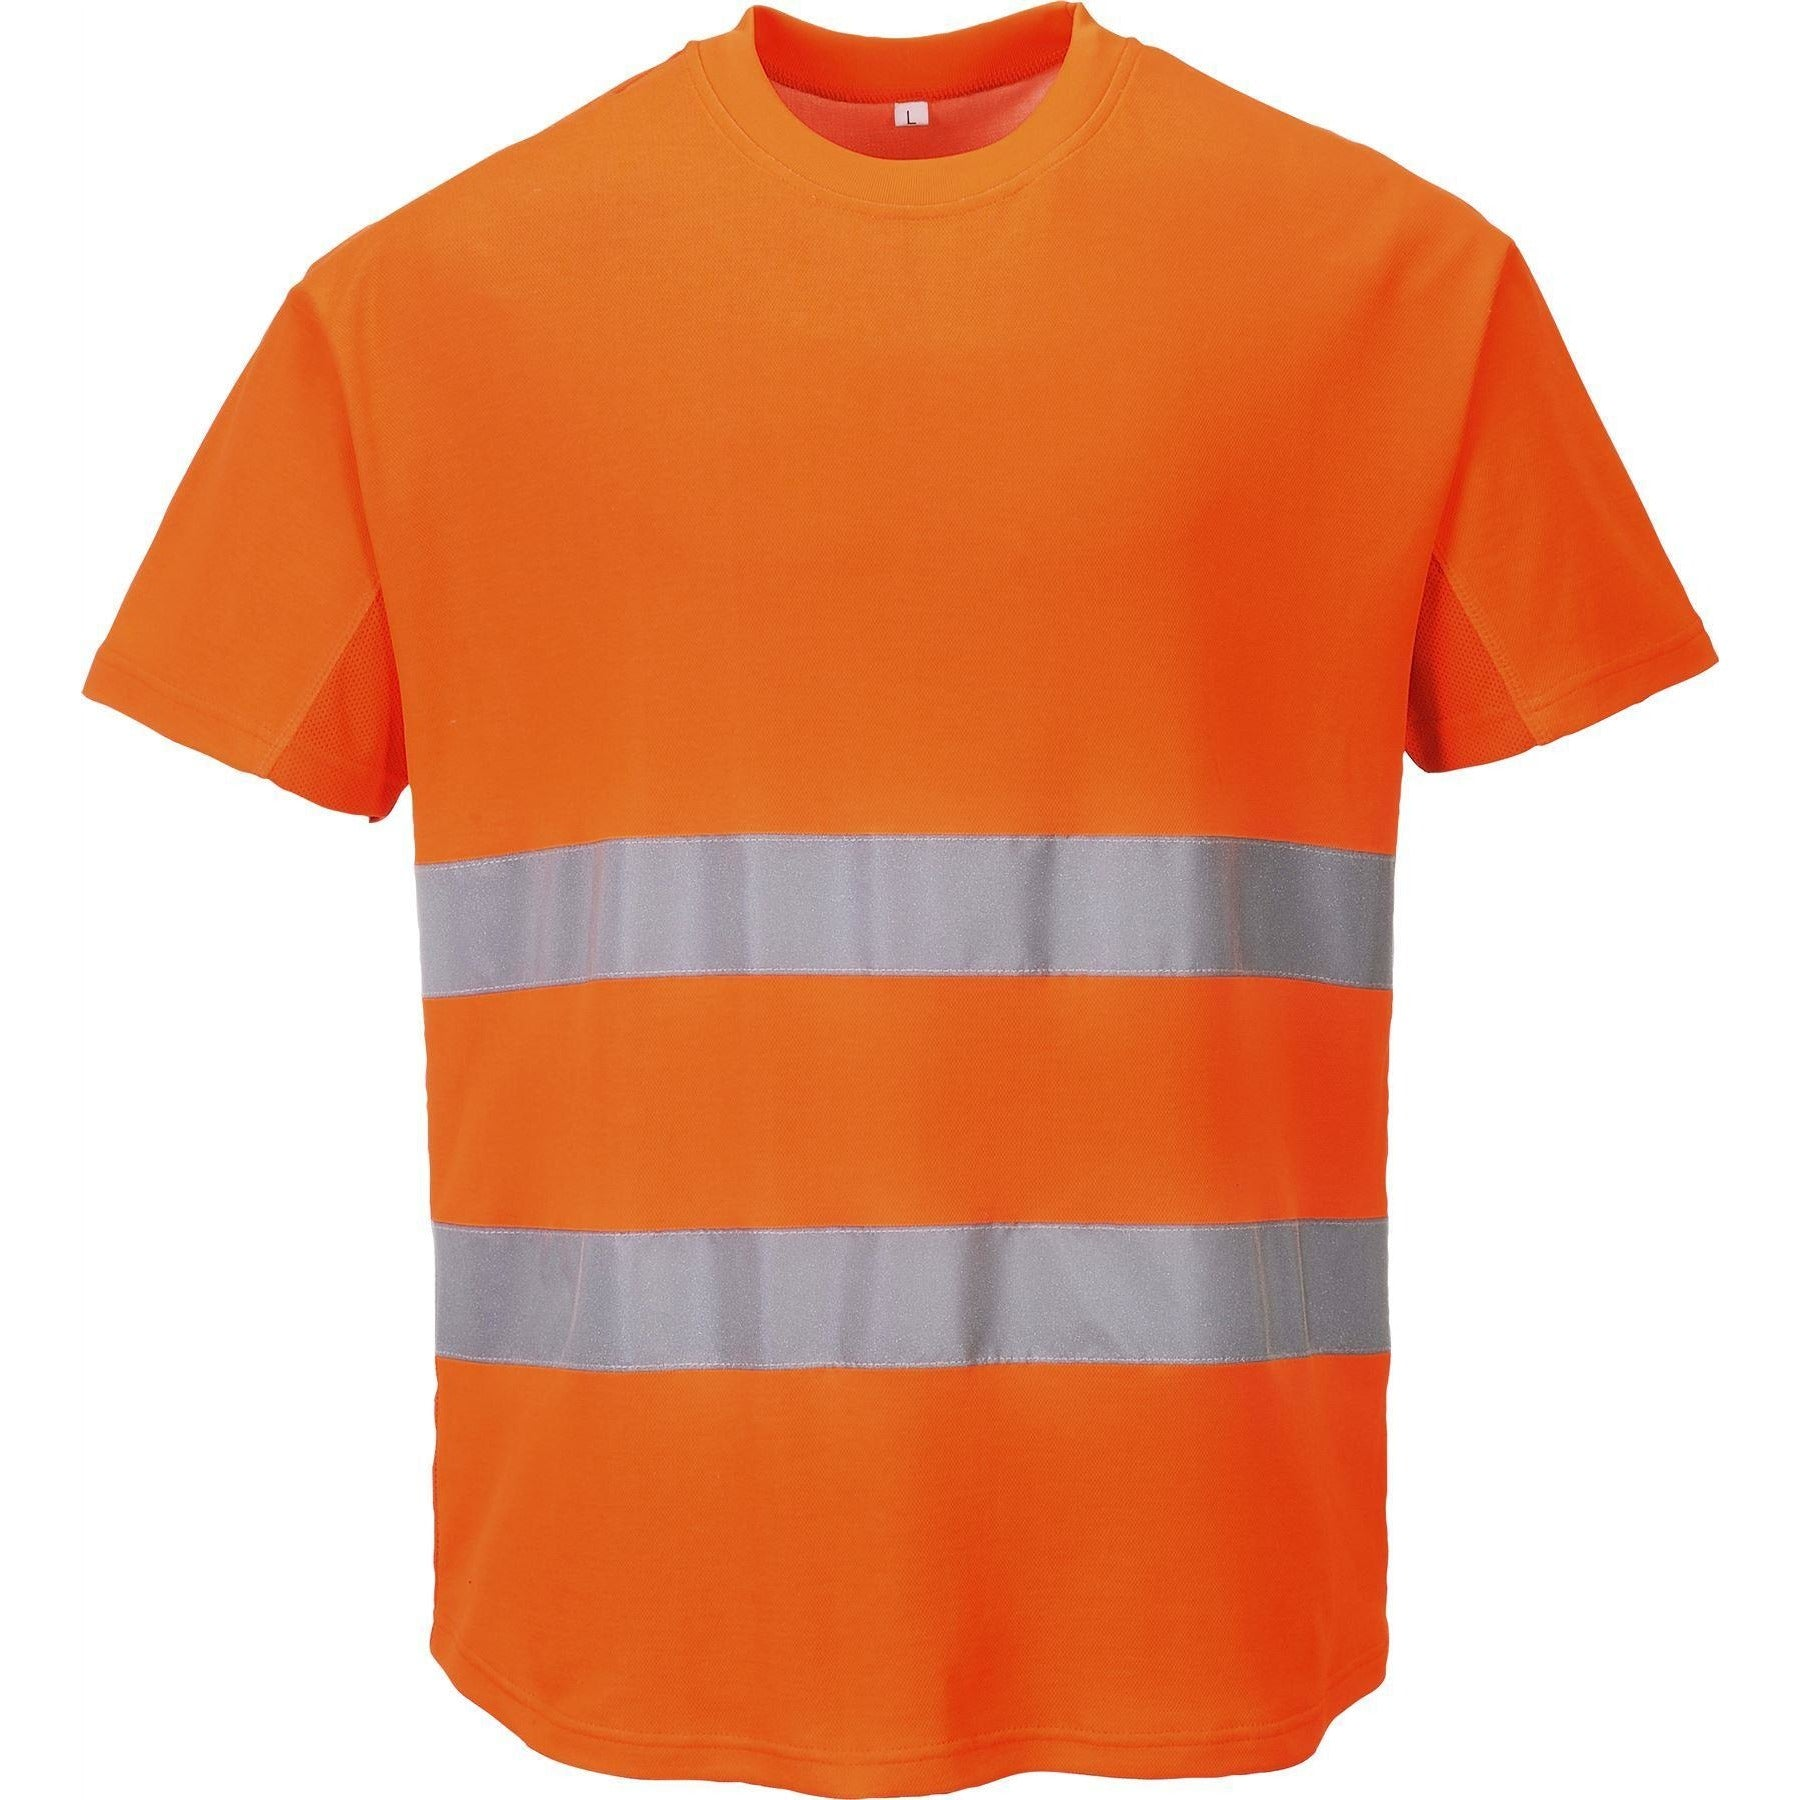 Portwest Mesh T-shirt C394